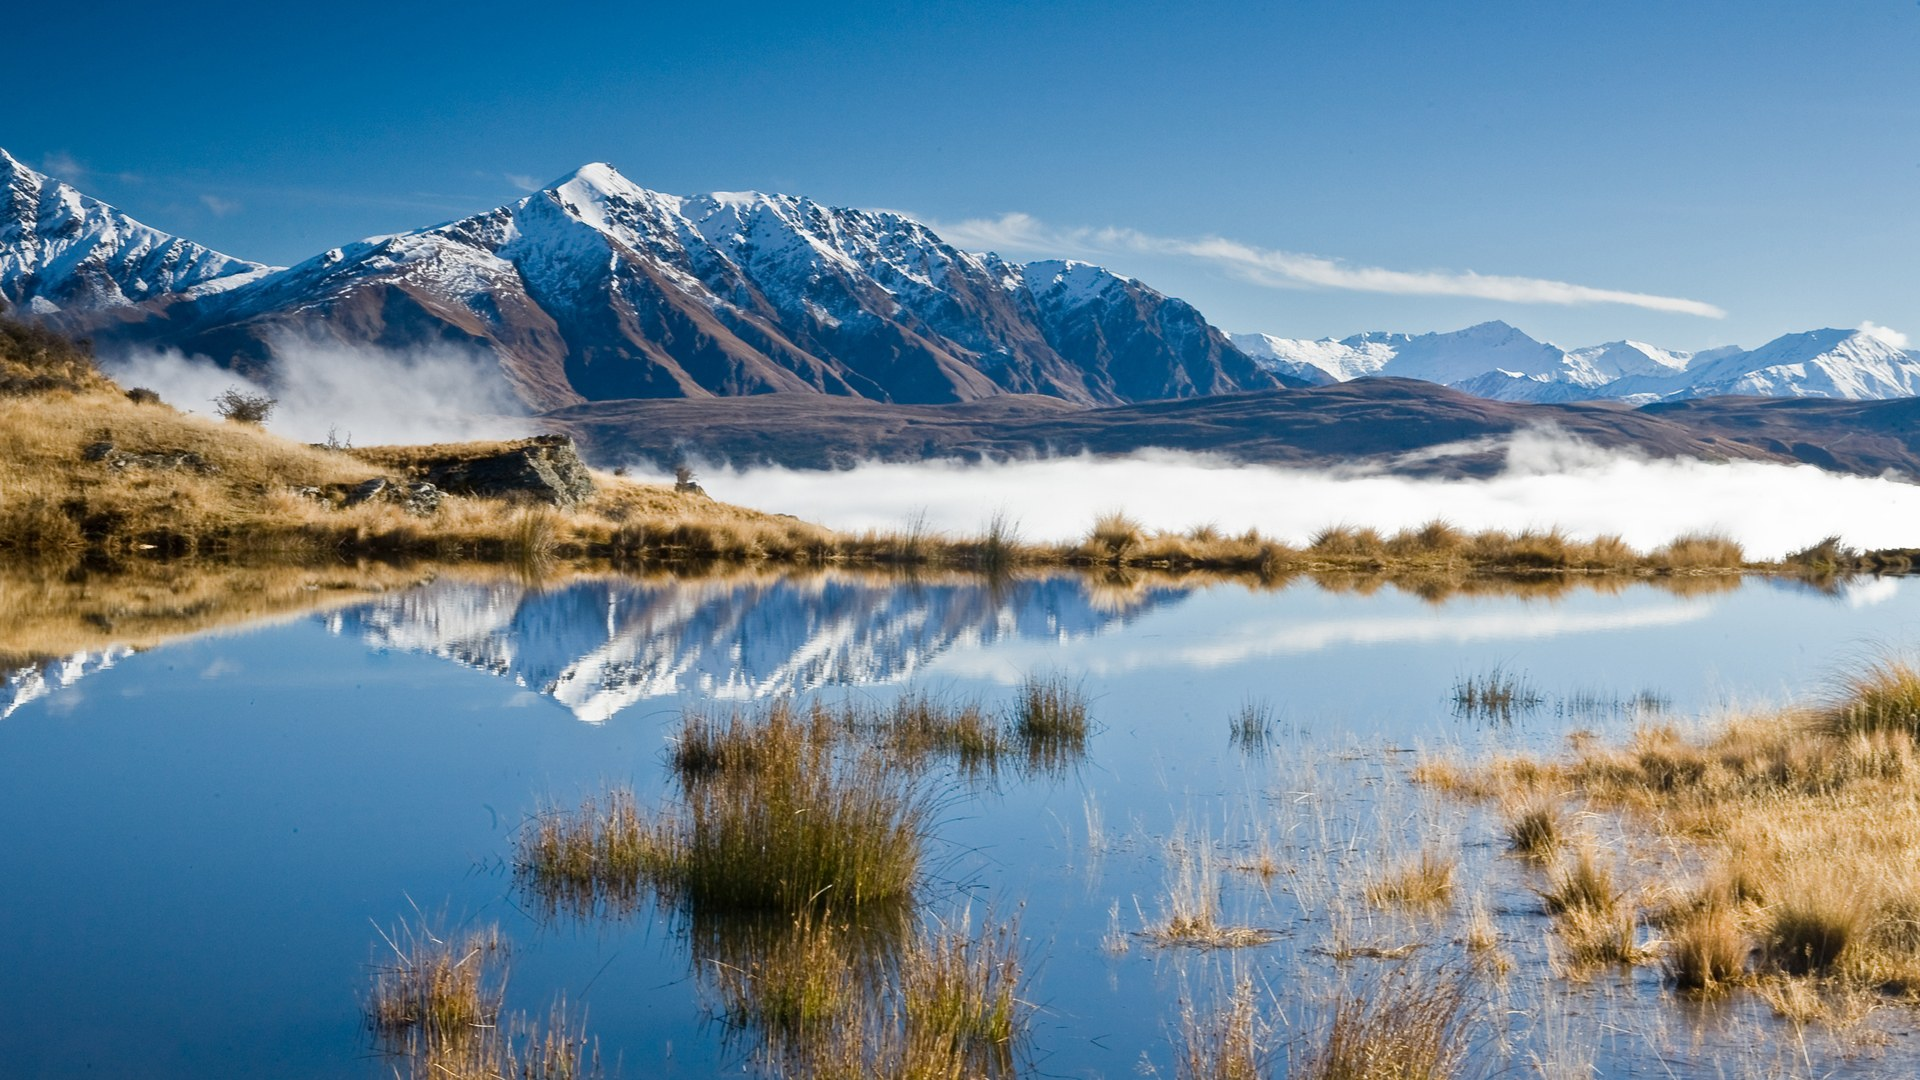 New Zealand wallpapers New Zealand background   Page 2 1920x1080